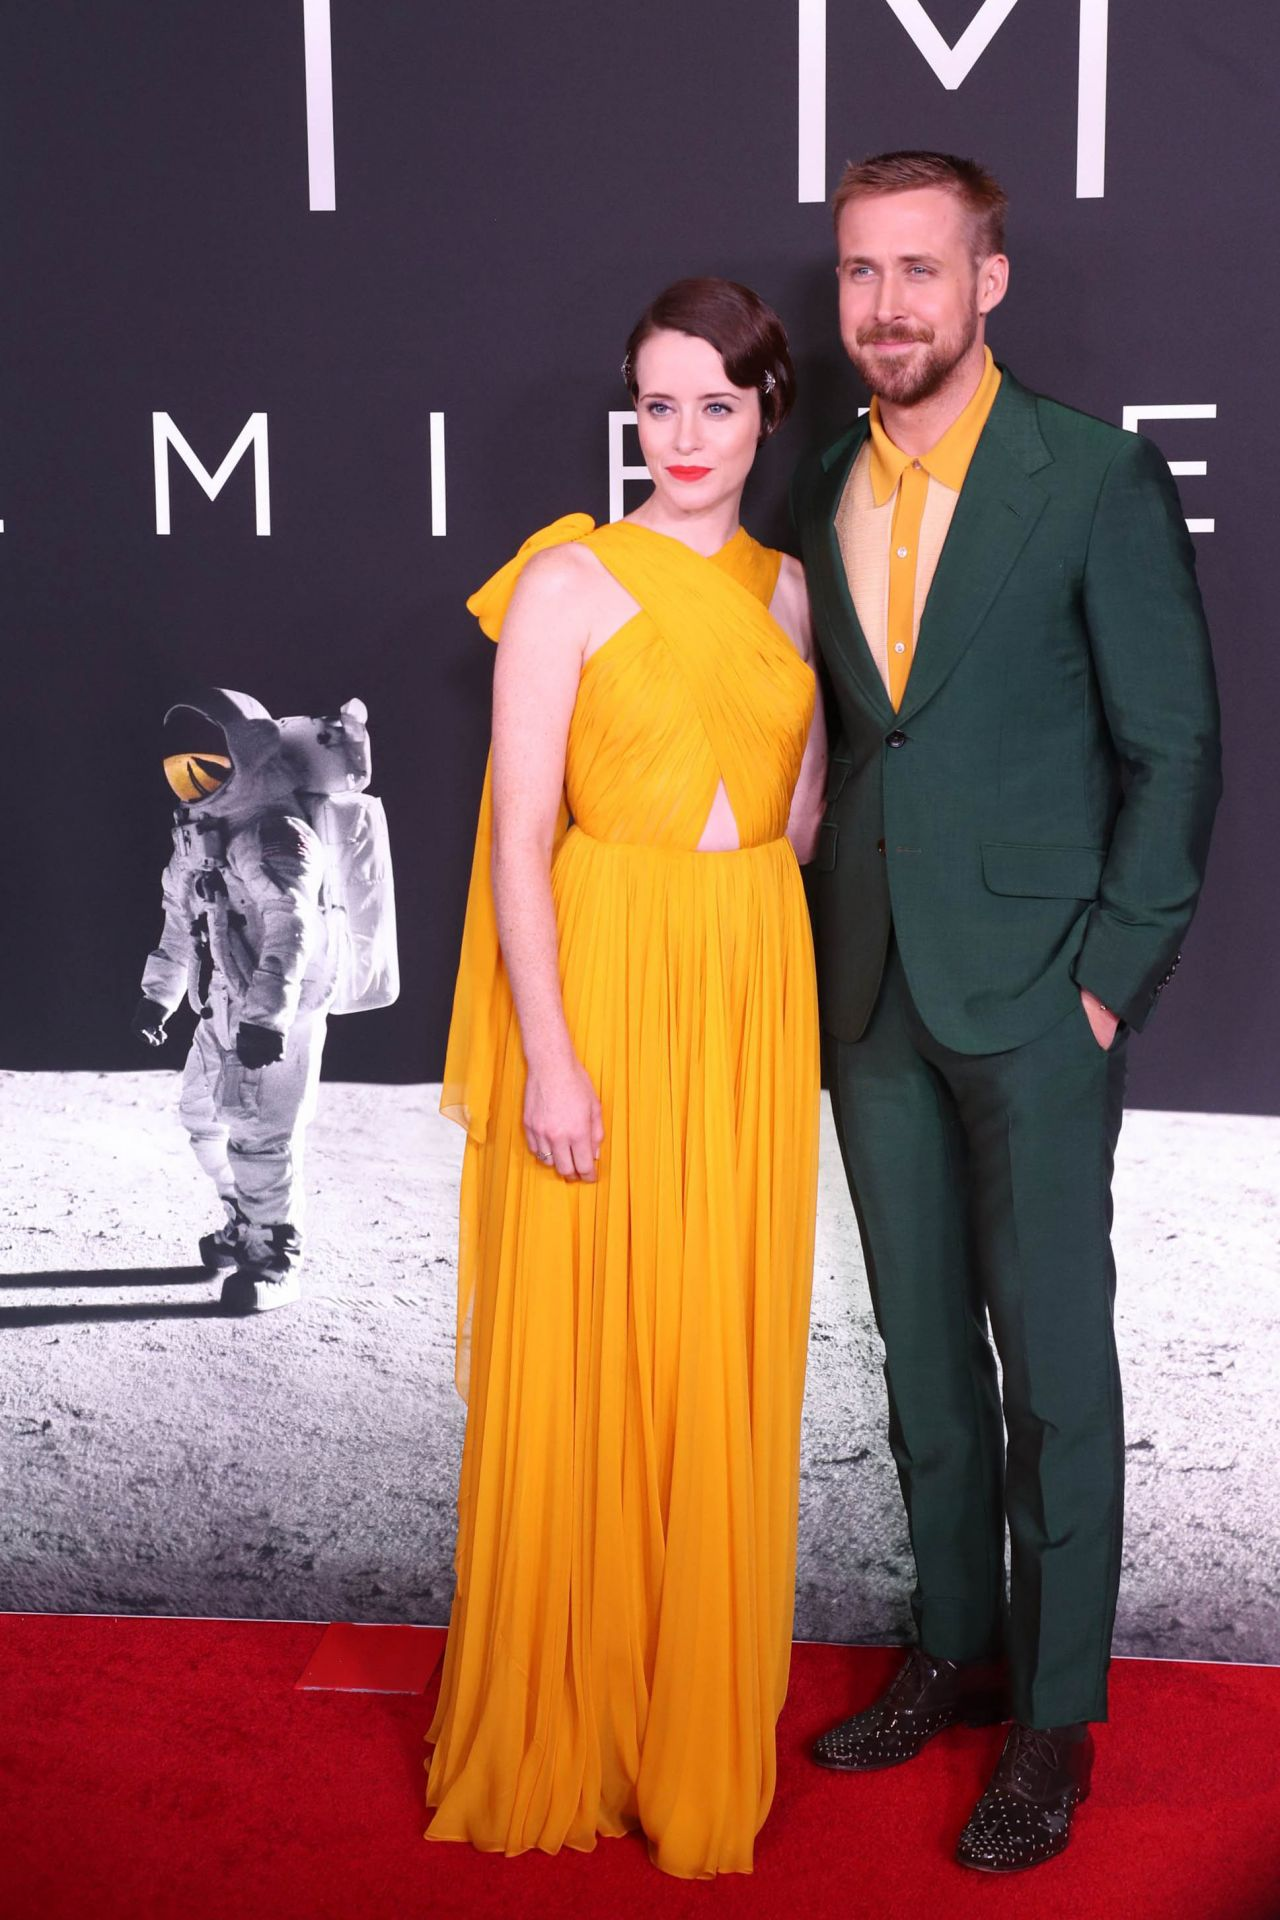 Claire Foy First Man Premiere In Washington DC